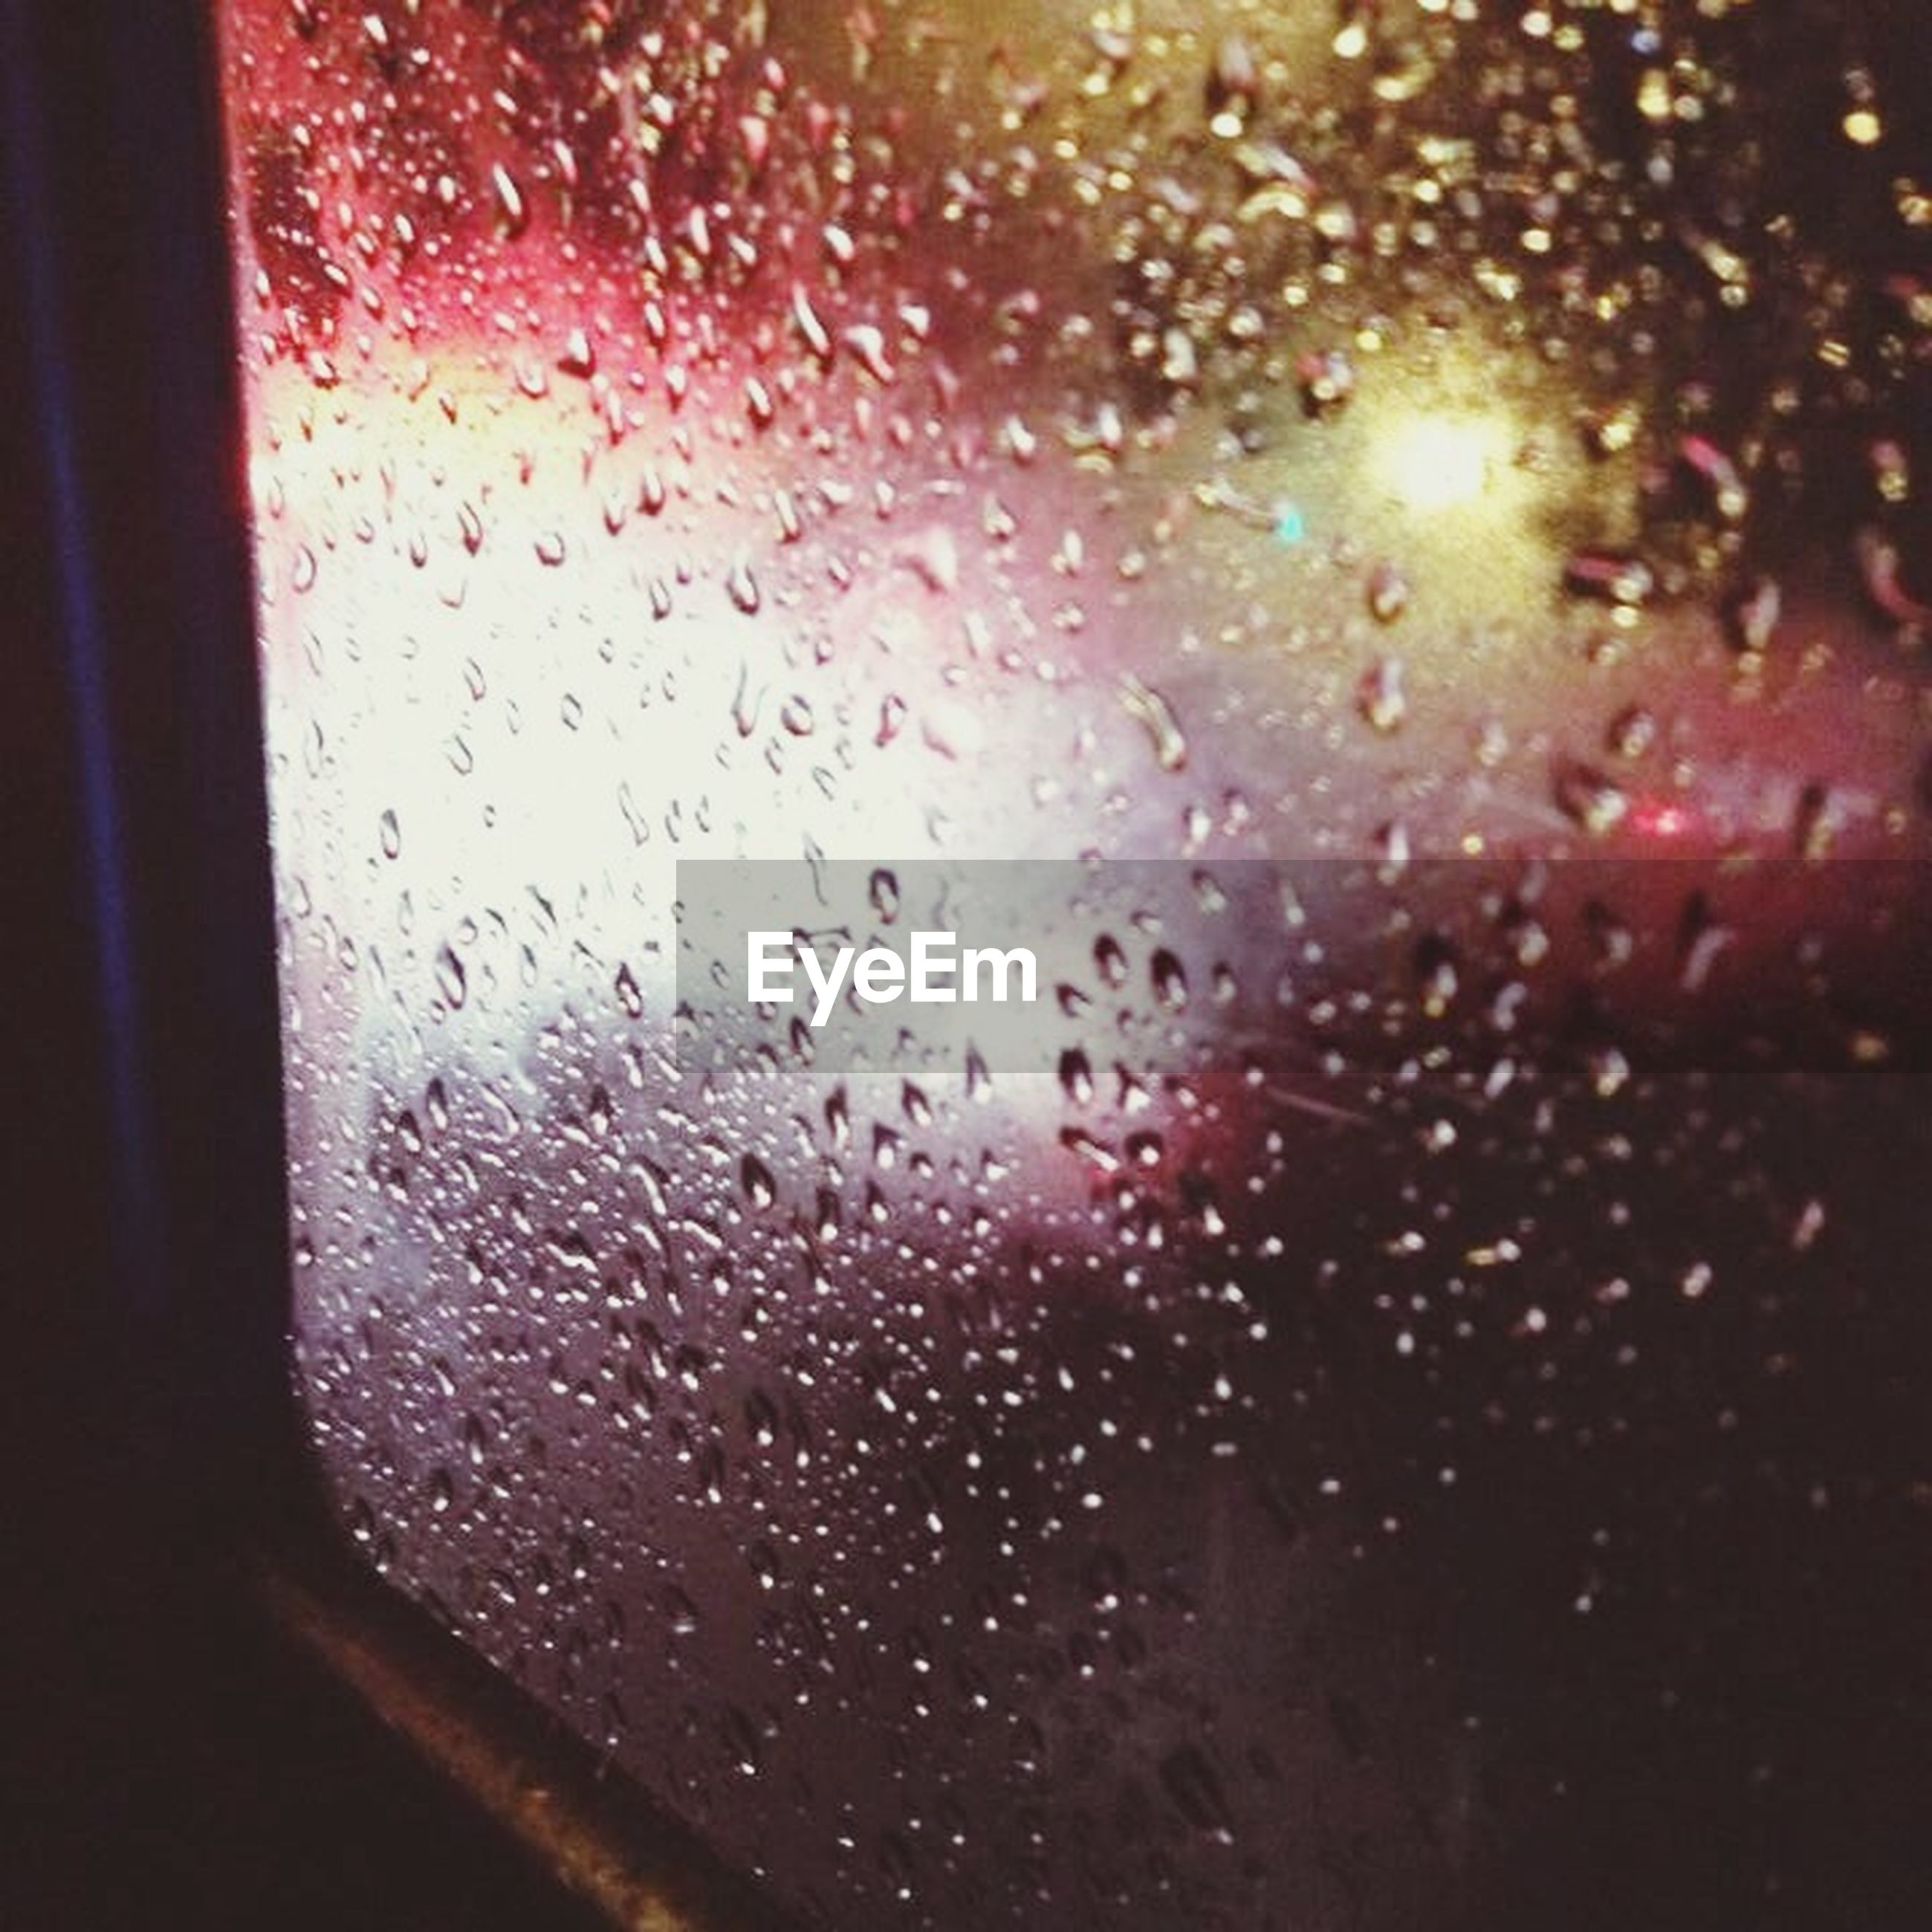 drop, transparent, window, wet, indoors, glass - material, rain, water, glass, raindrop, close-up, weather, season, focus on foreground, full frame, backgrounds, condensation, droplet, water drop, vehicle interior